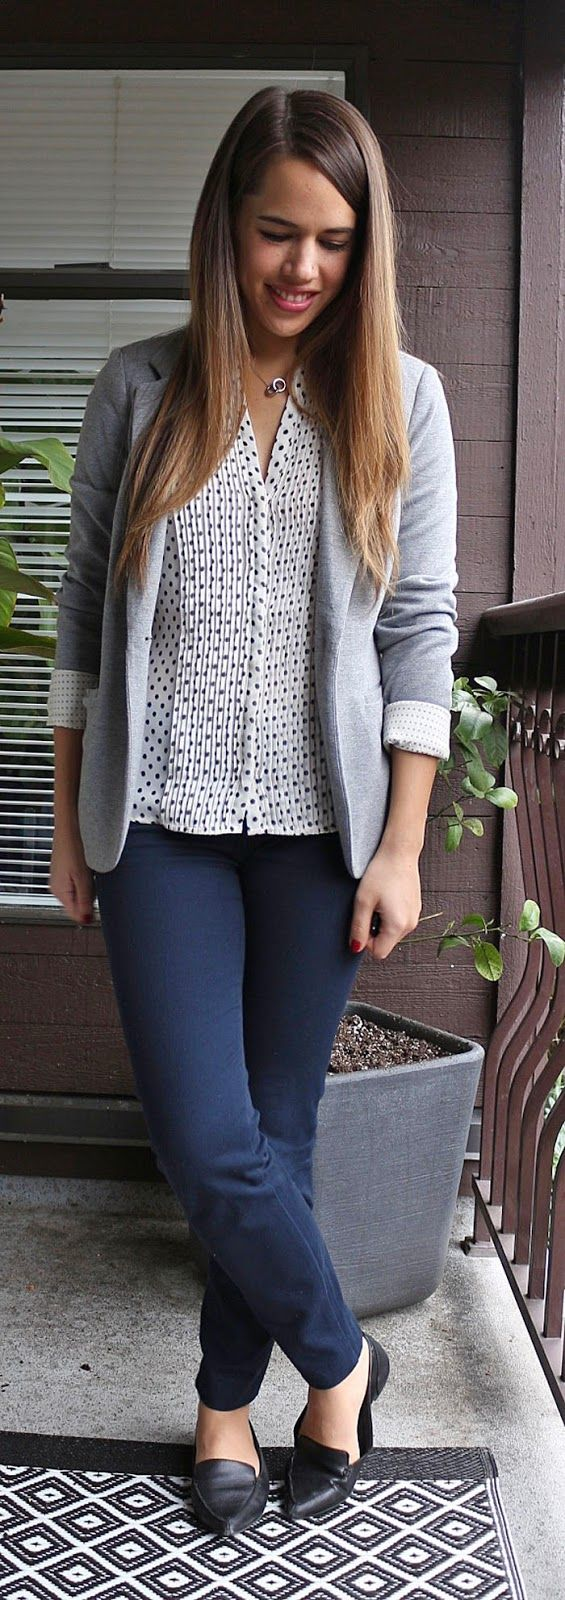 23 Comfy & Chic Work Outfits With Flats For Happy Feet